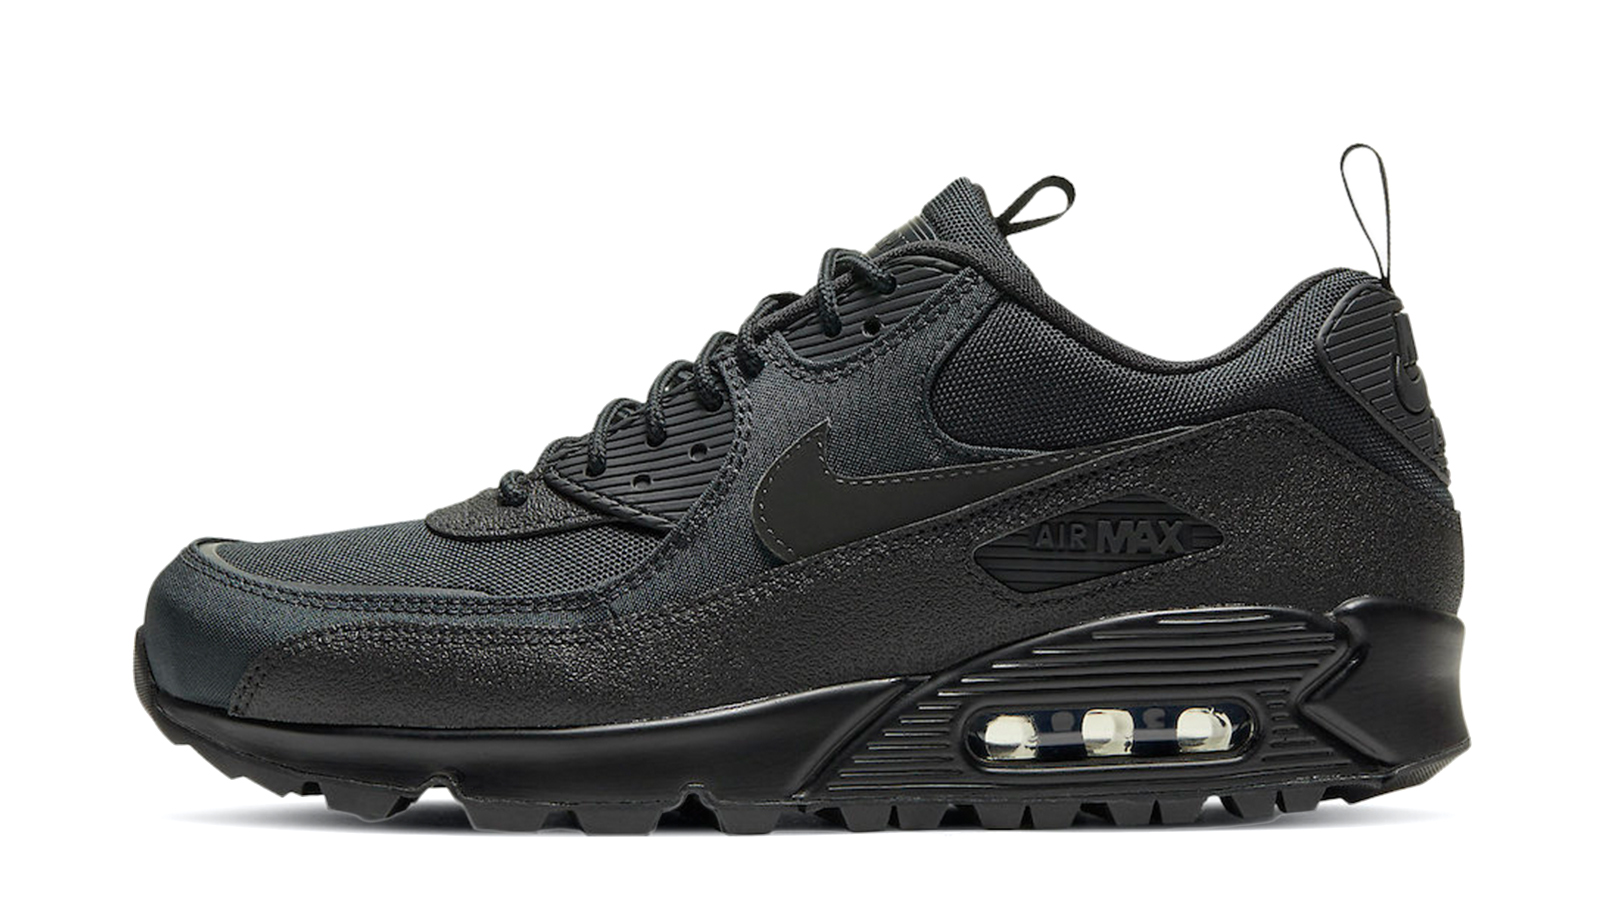 Nike Air Max 90 Black Infrared Surplus CQ7743-001